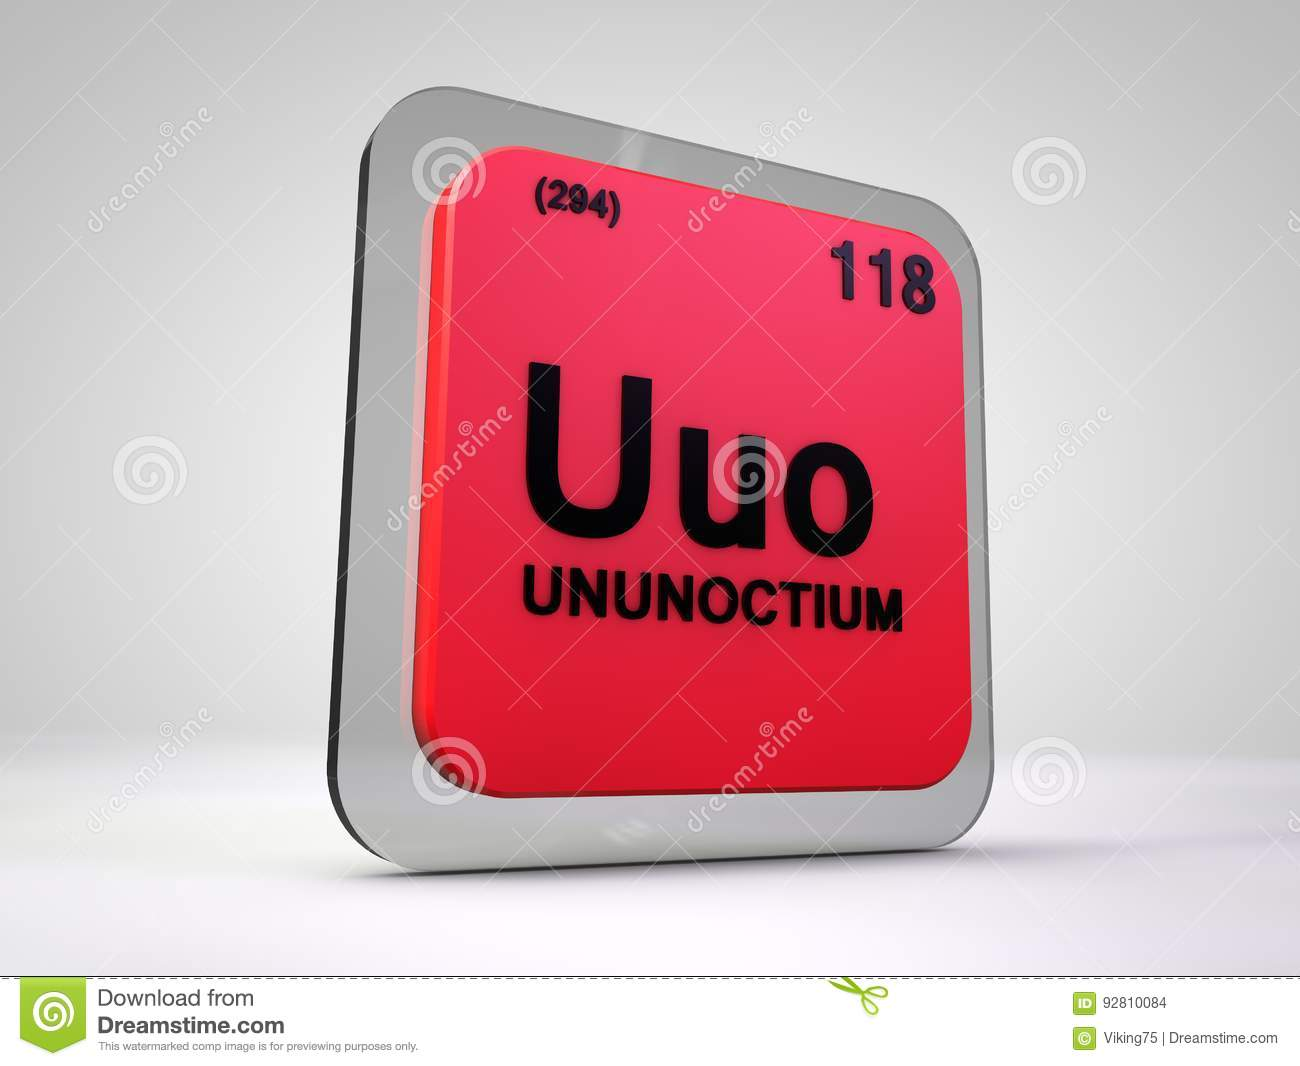 Ununoctium uuo chemical element periodic table stock download comp urtaz